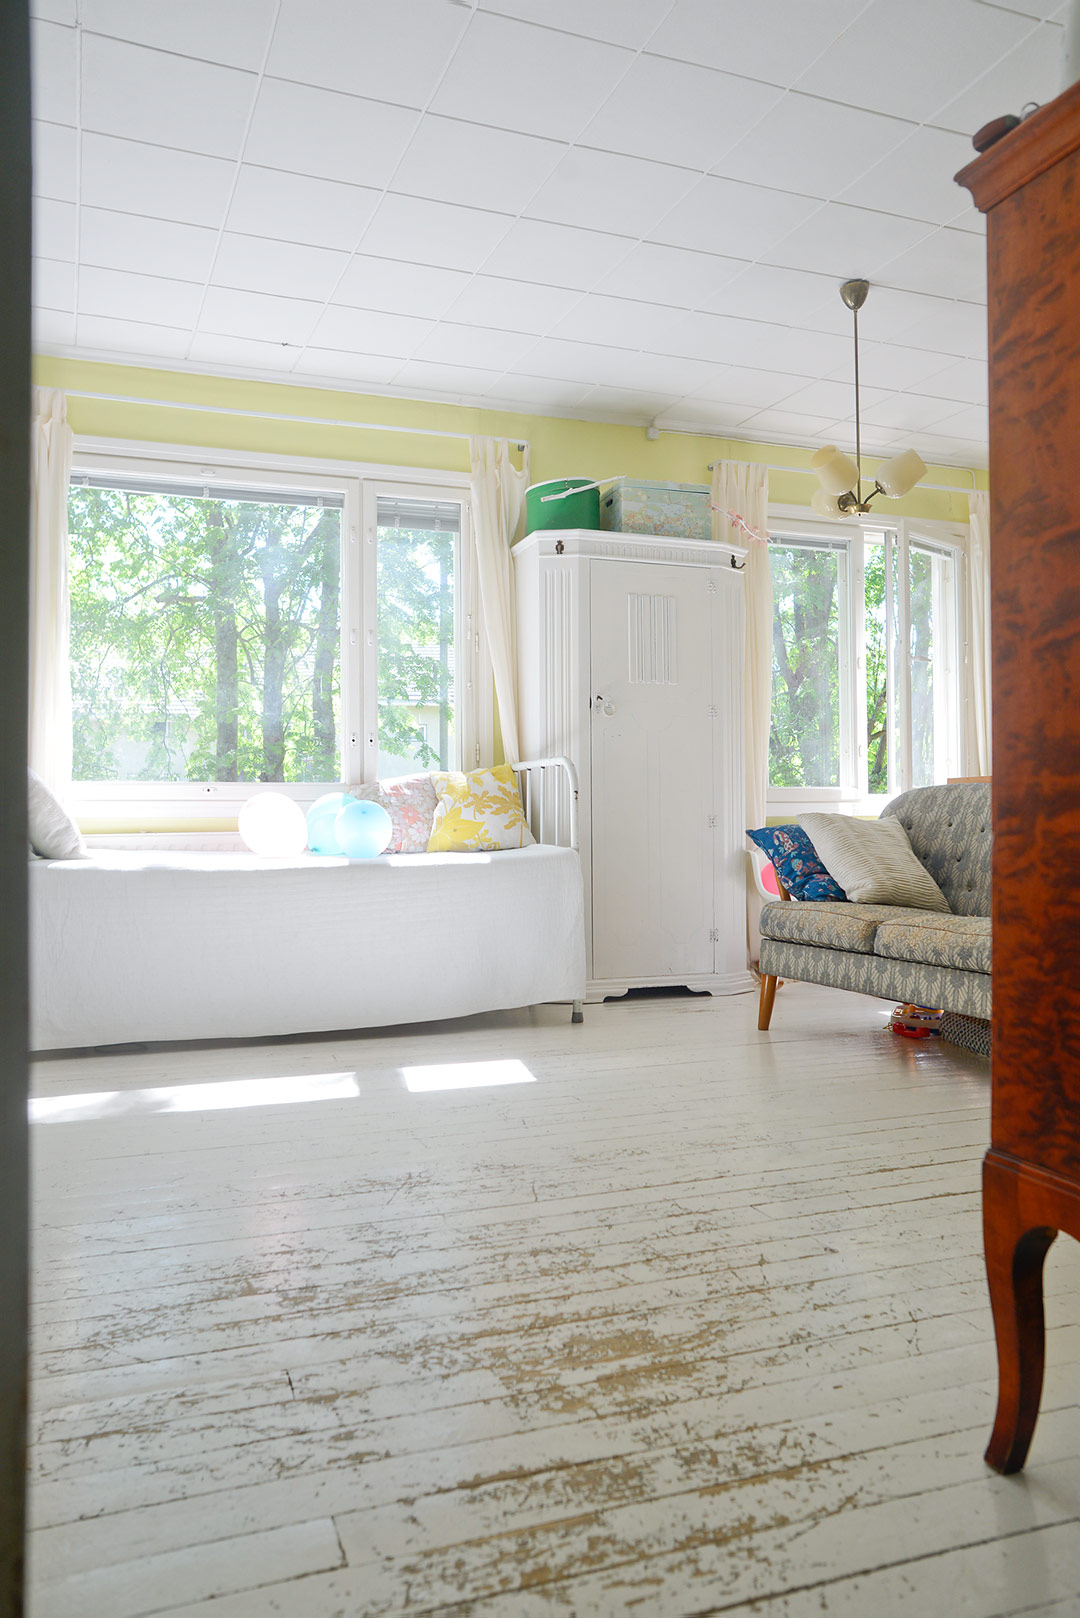 To do: Paint the living room floor